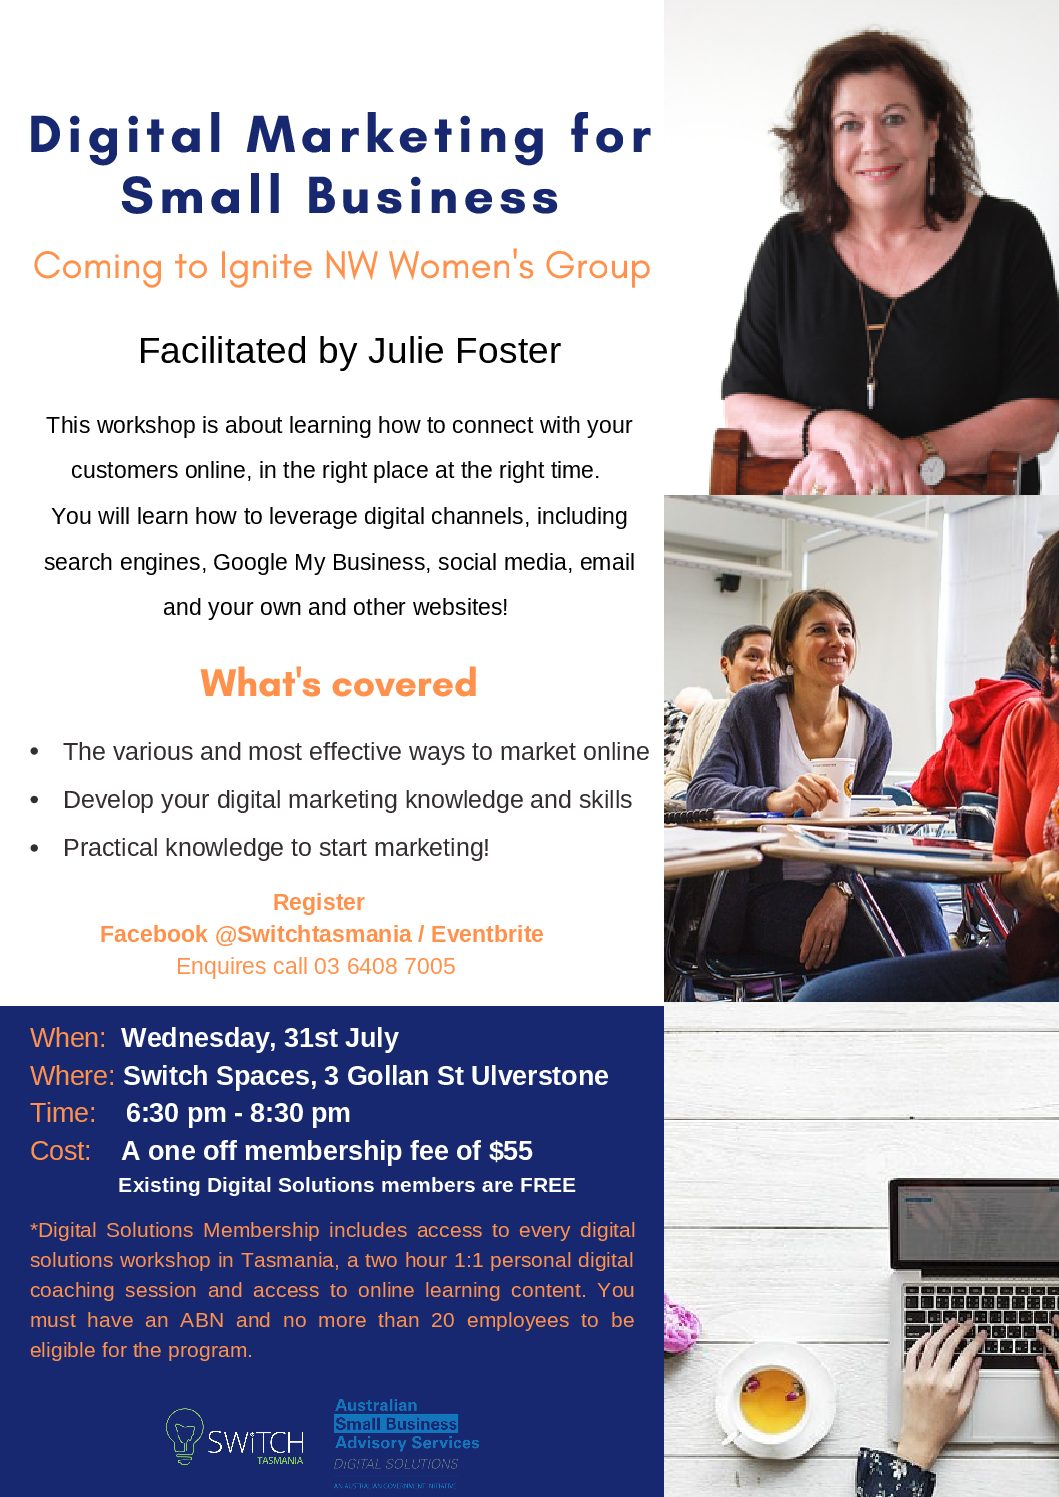 Digital Marketing for Small Business I Ignite NW Women